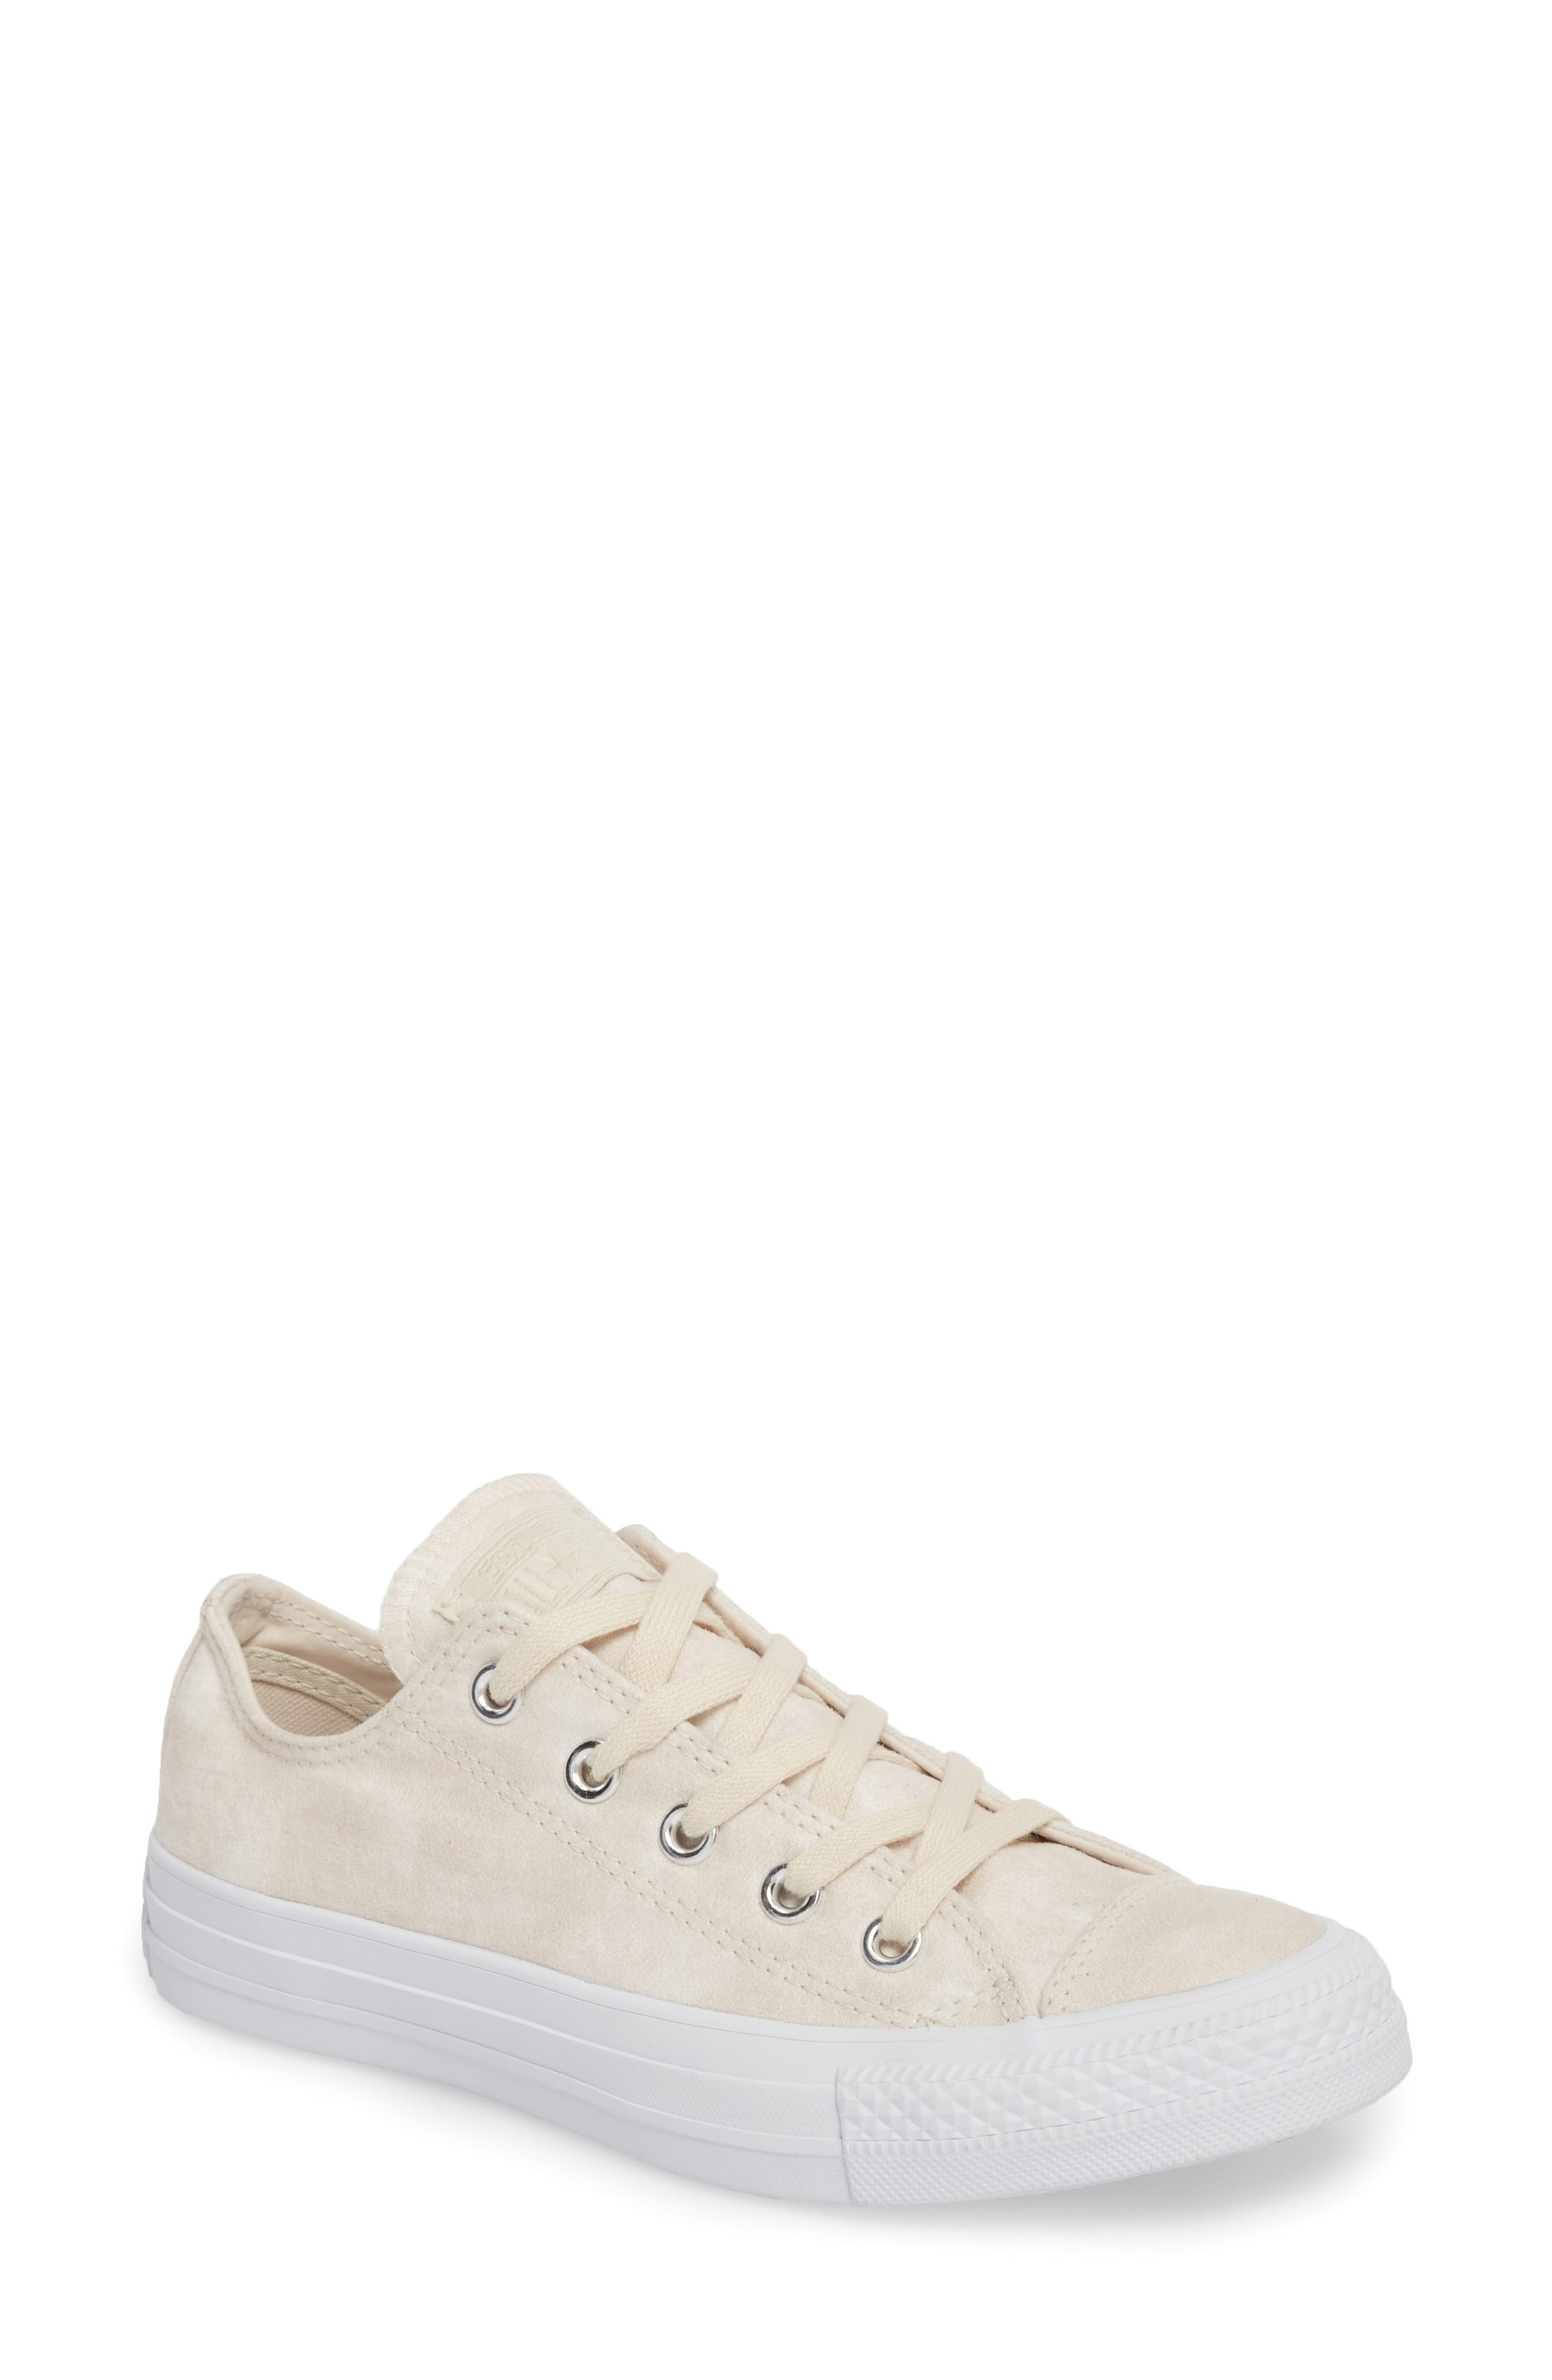 Chuck Taylor<sup>®</sup> All Star<sup>®</sup> Peached Low Top Sneaker,                         Main,                         color, Driftwood